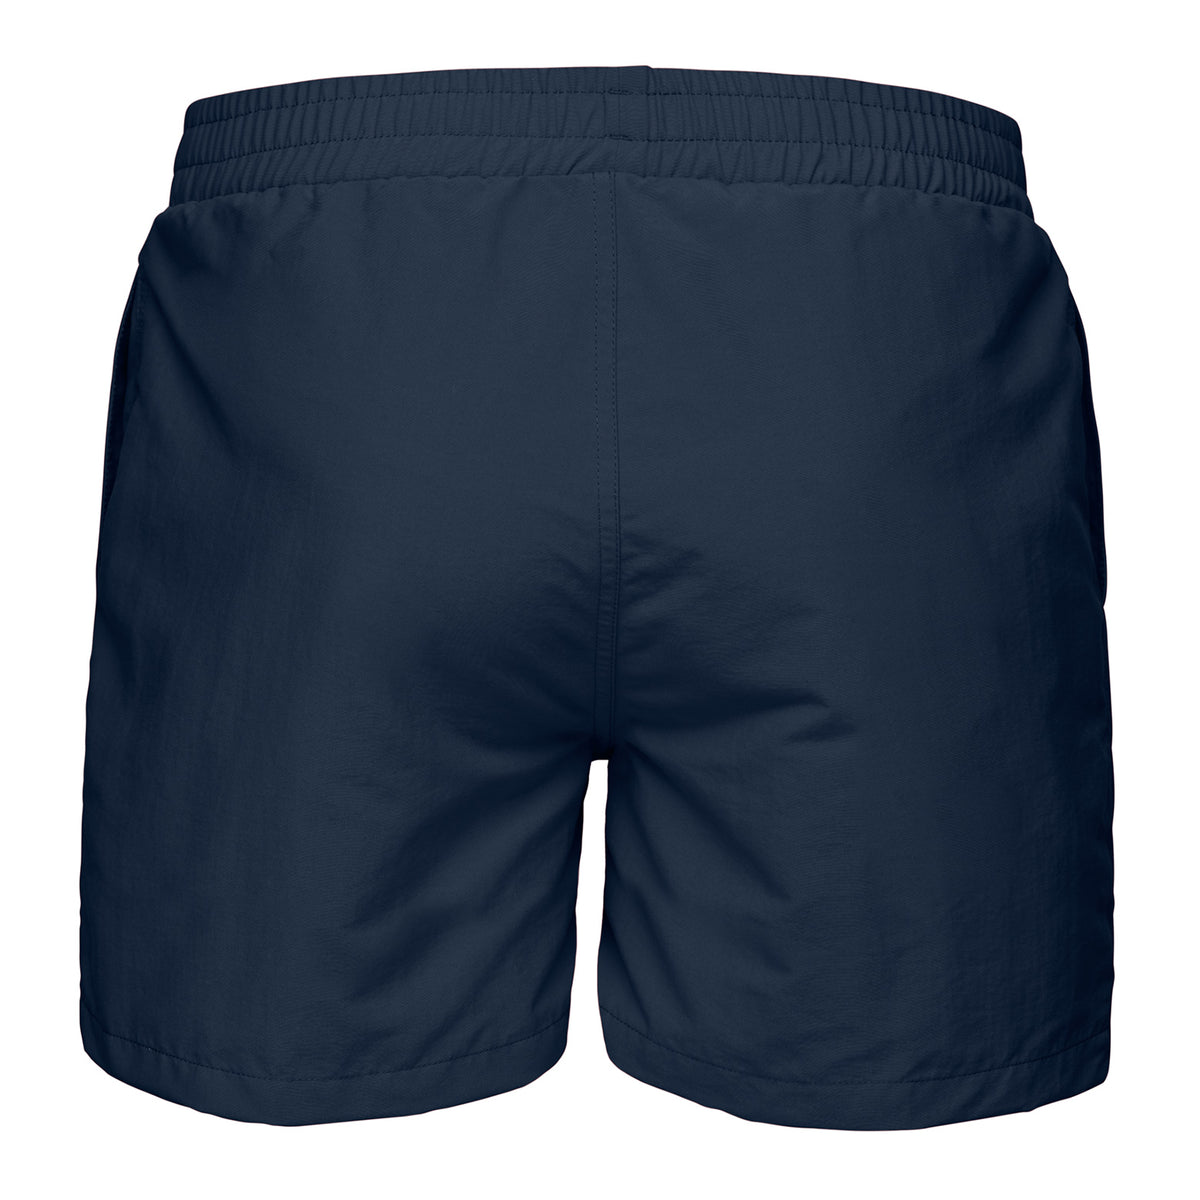 Breeze Swimshort Long - background::white,variant::Navy